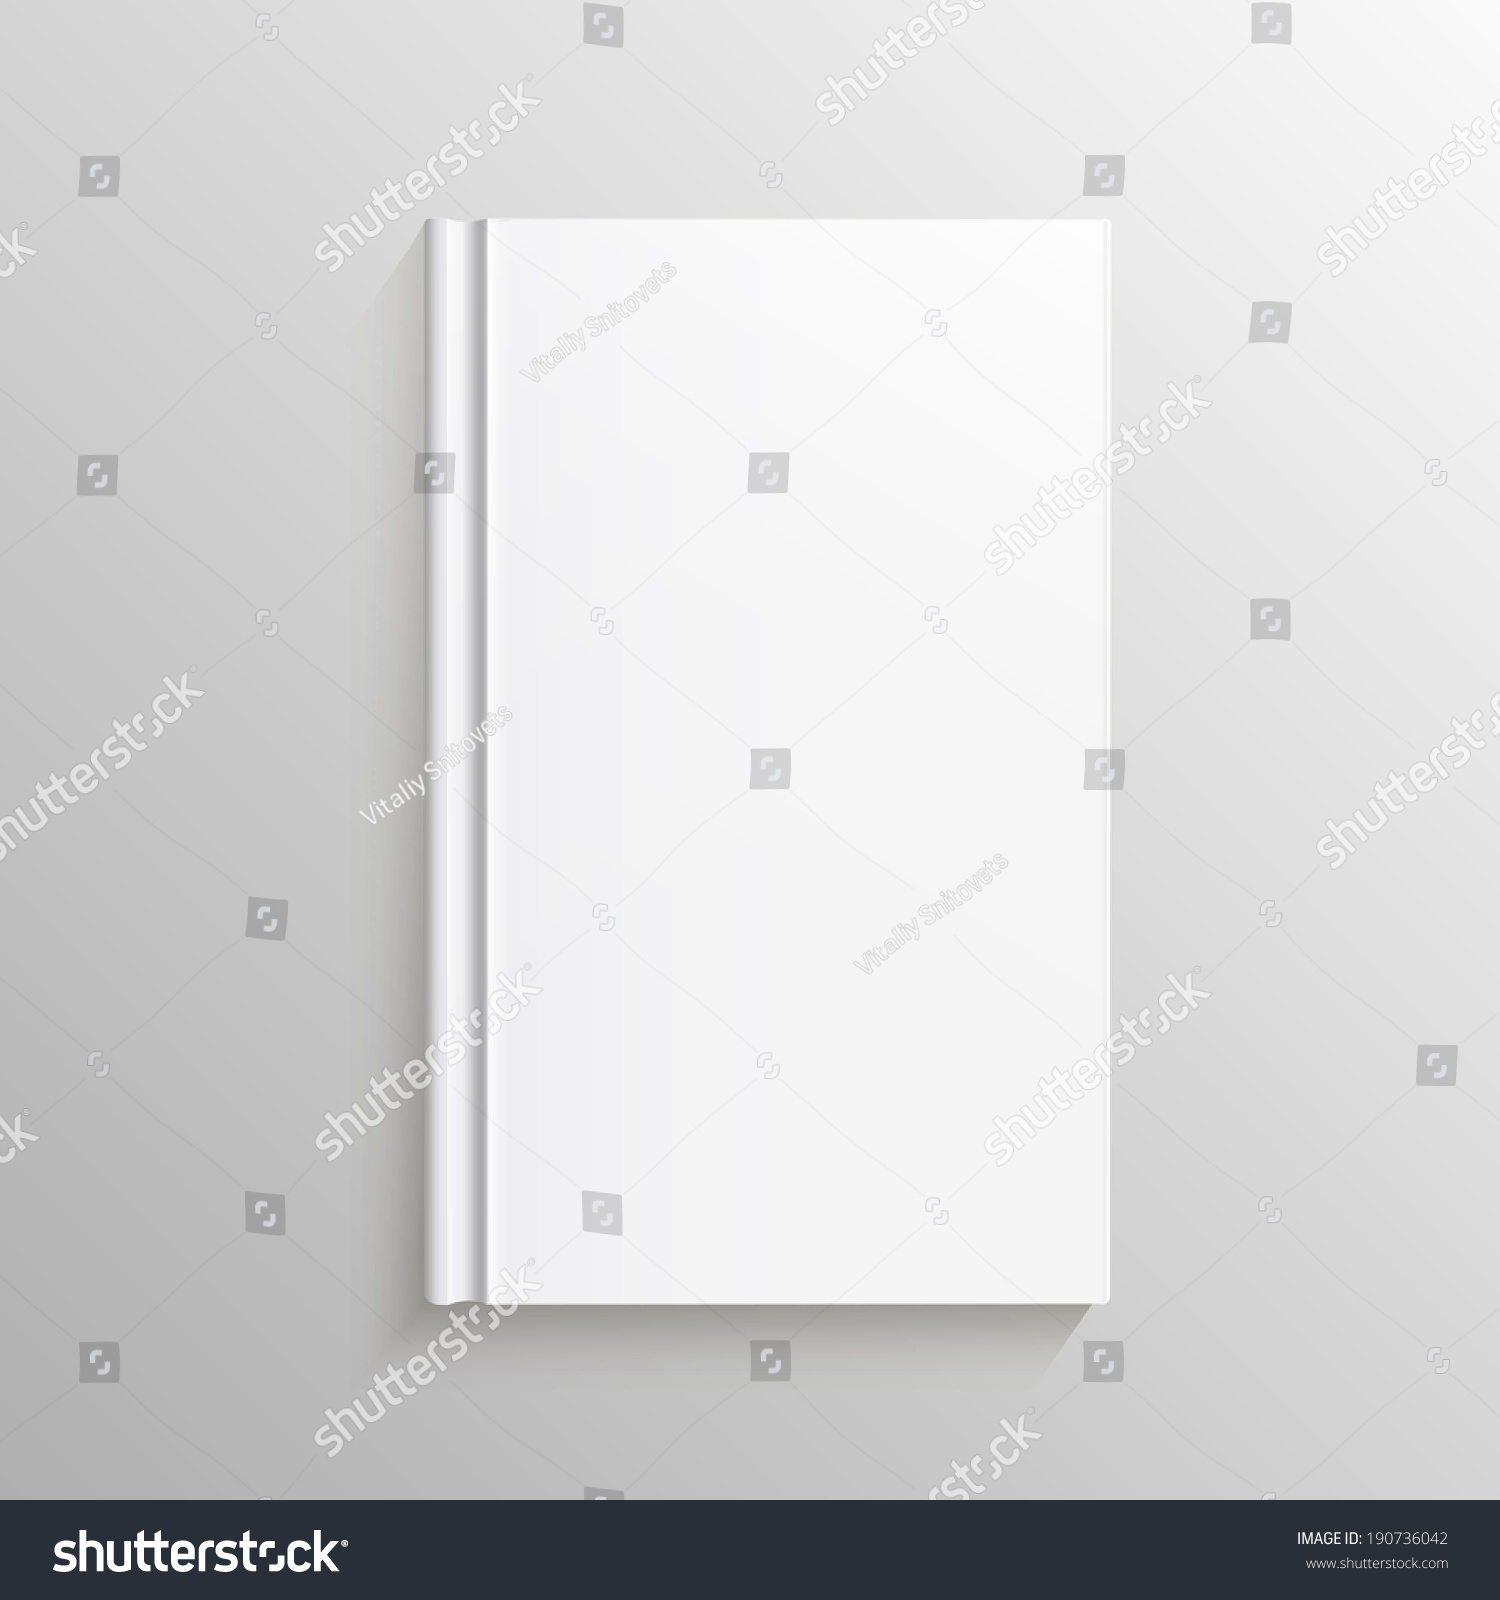 Book Cover Design Blank : Blank book cover vector illustration gradient stock